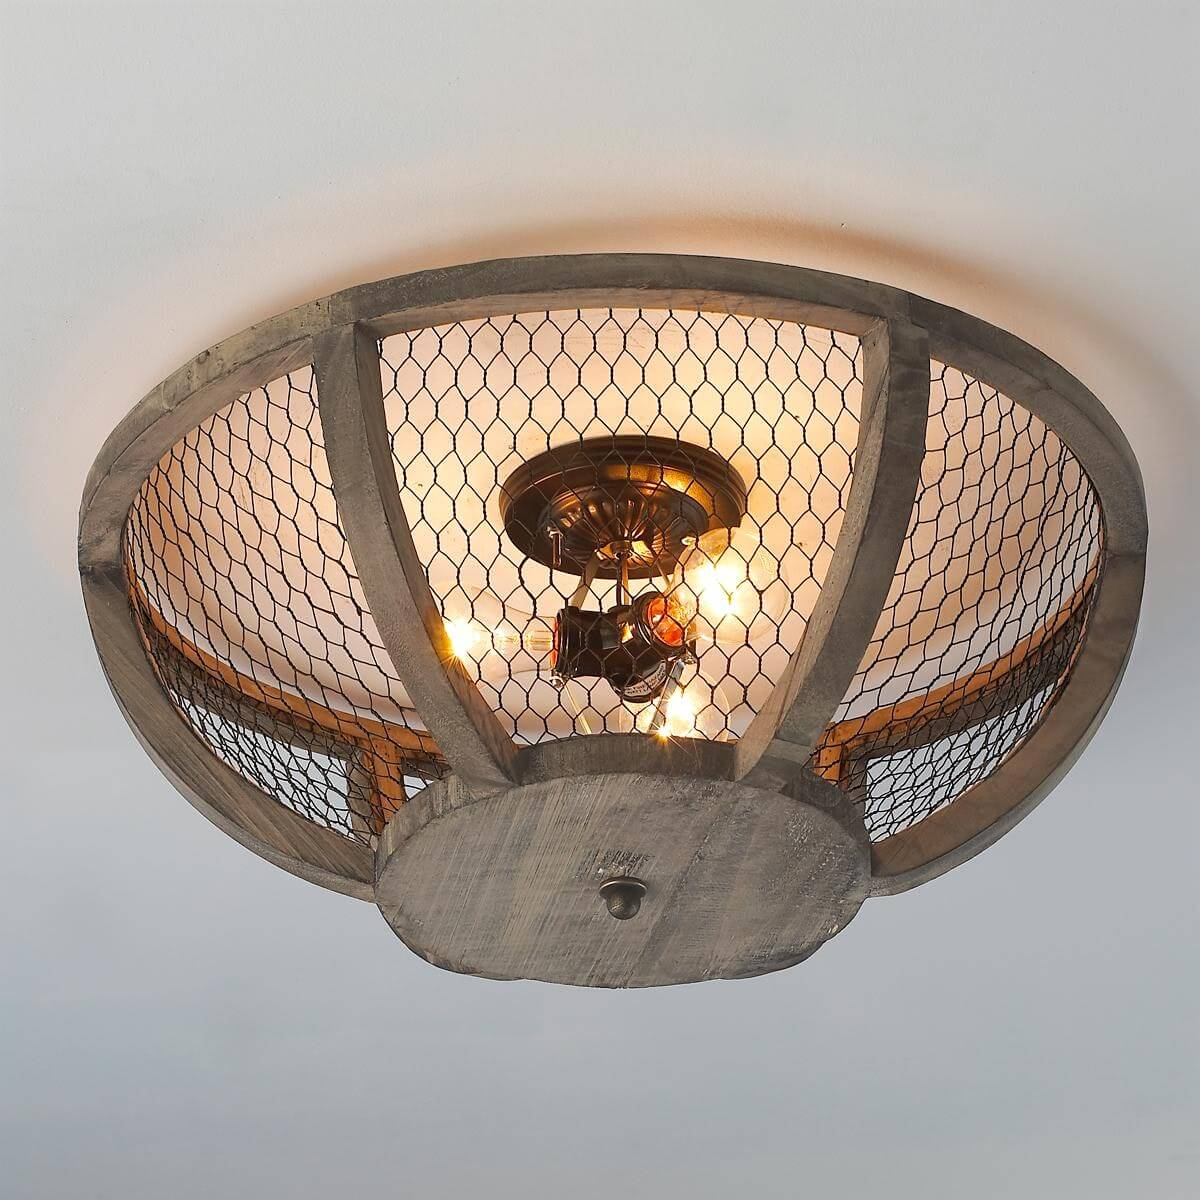 Ceiling Light Fixture With Chicken Wire Shade